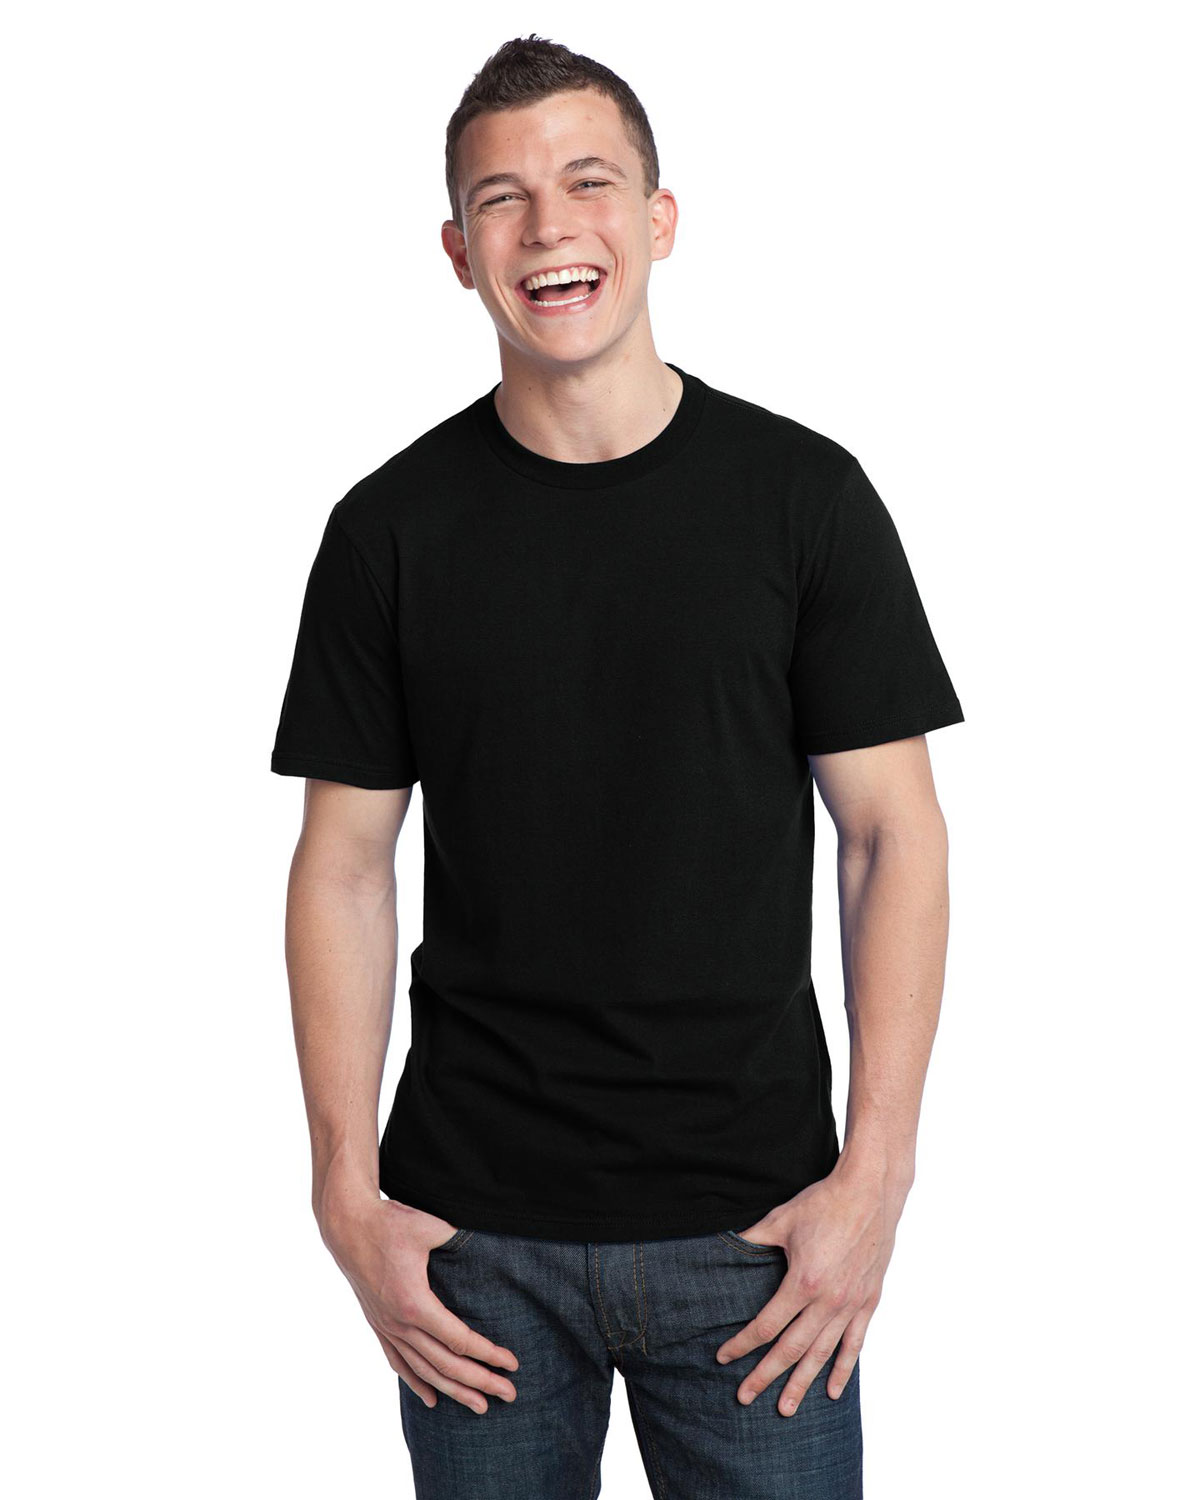 Men In Black T Shirt | Artee Shirt